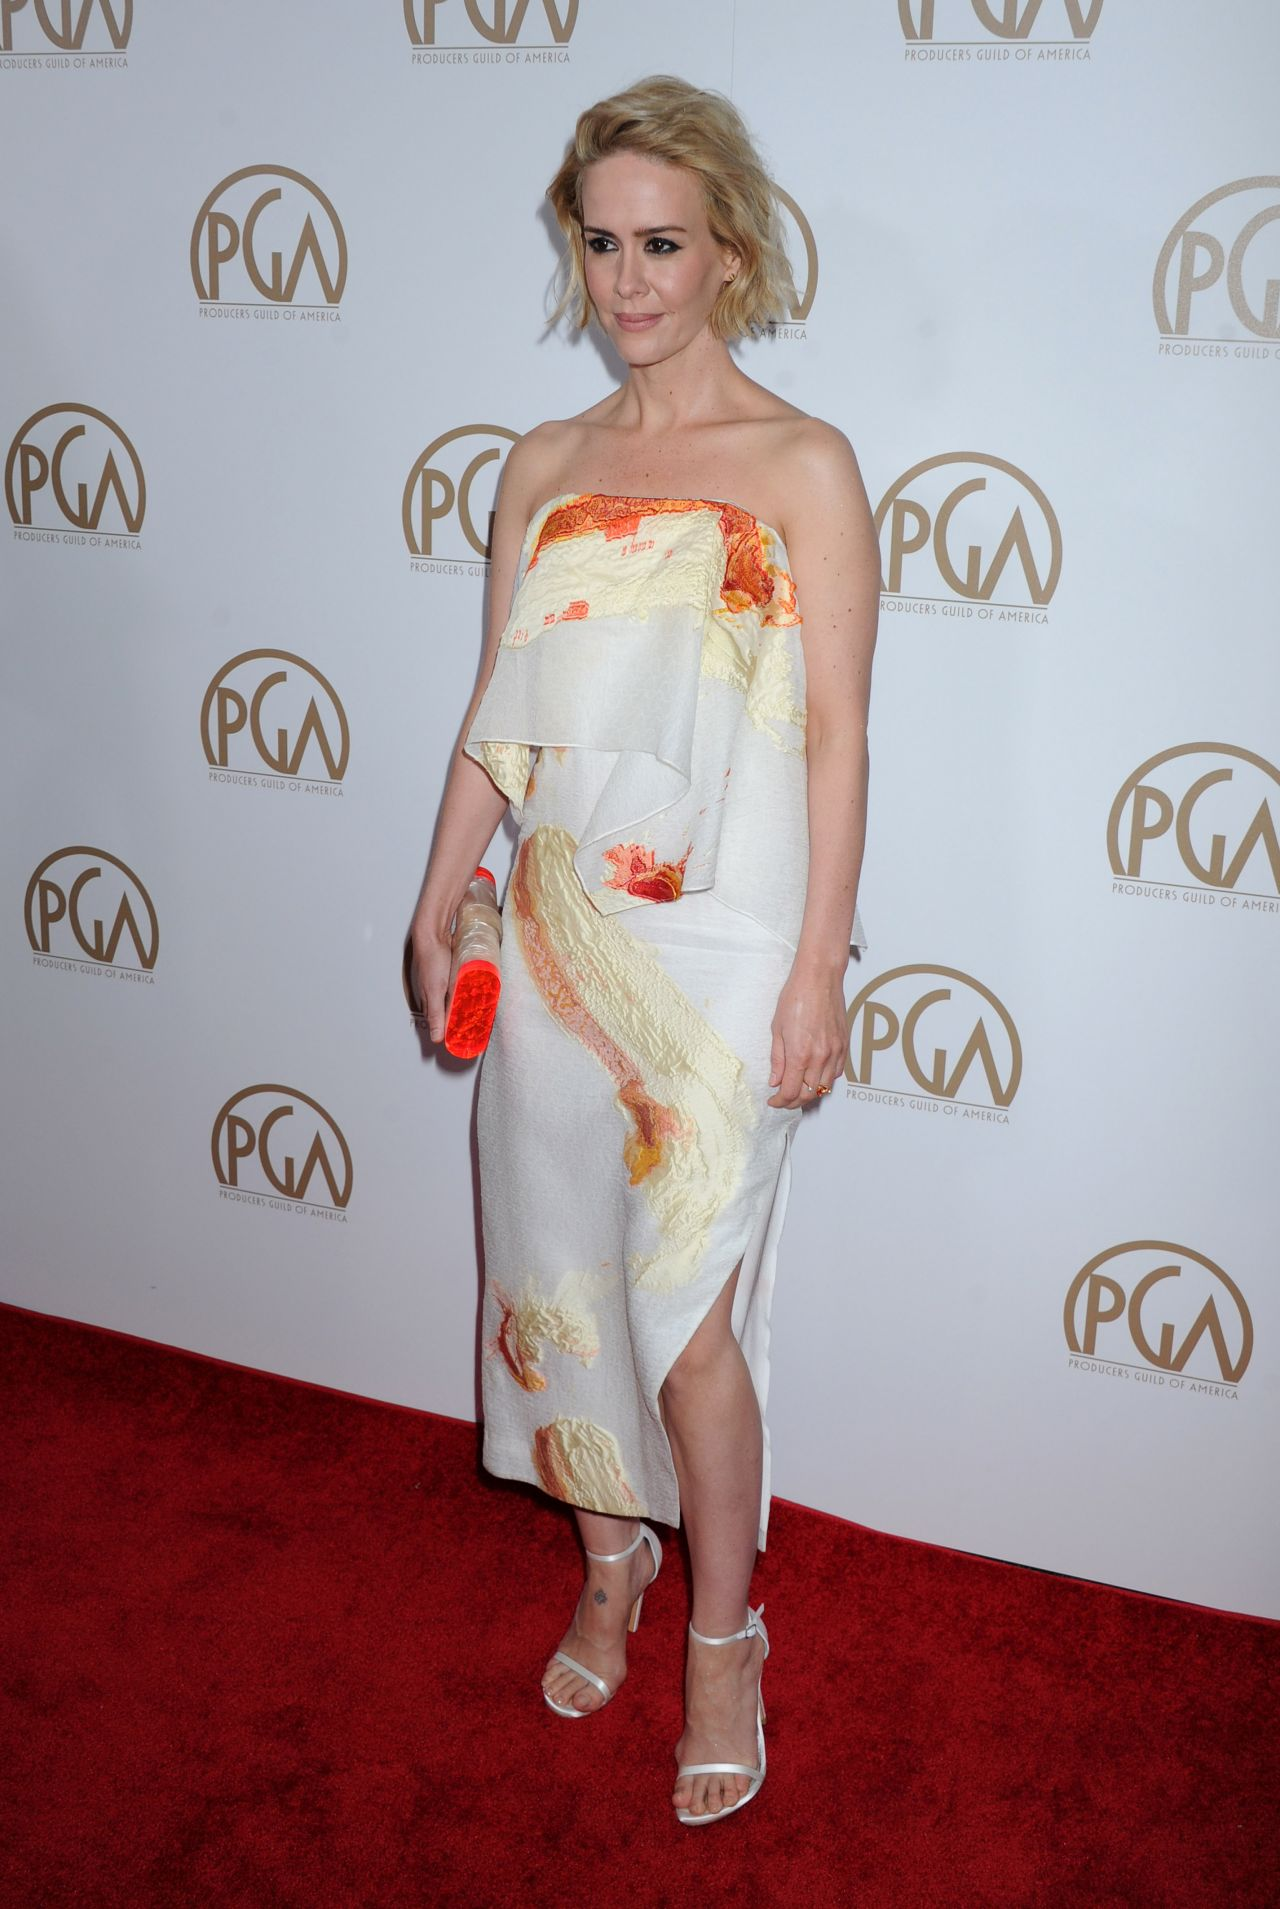 sarah-paulson-2016-producers-guild-awards-in-los-angeles-5